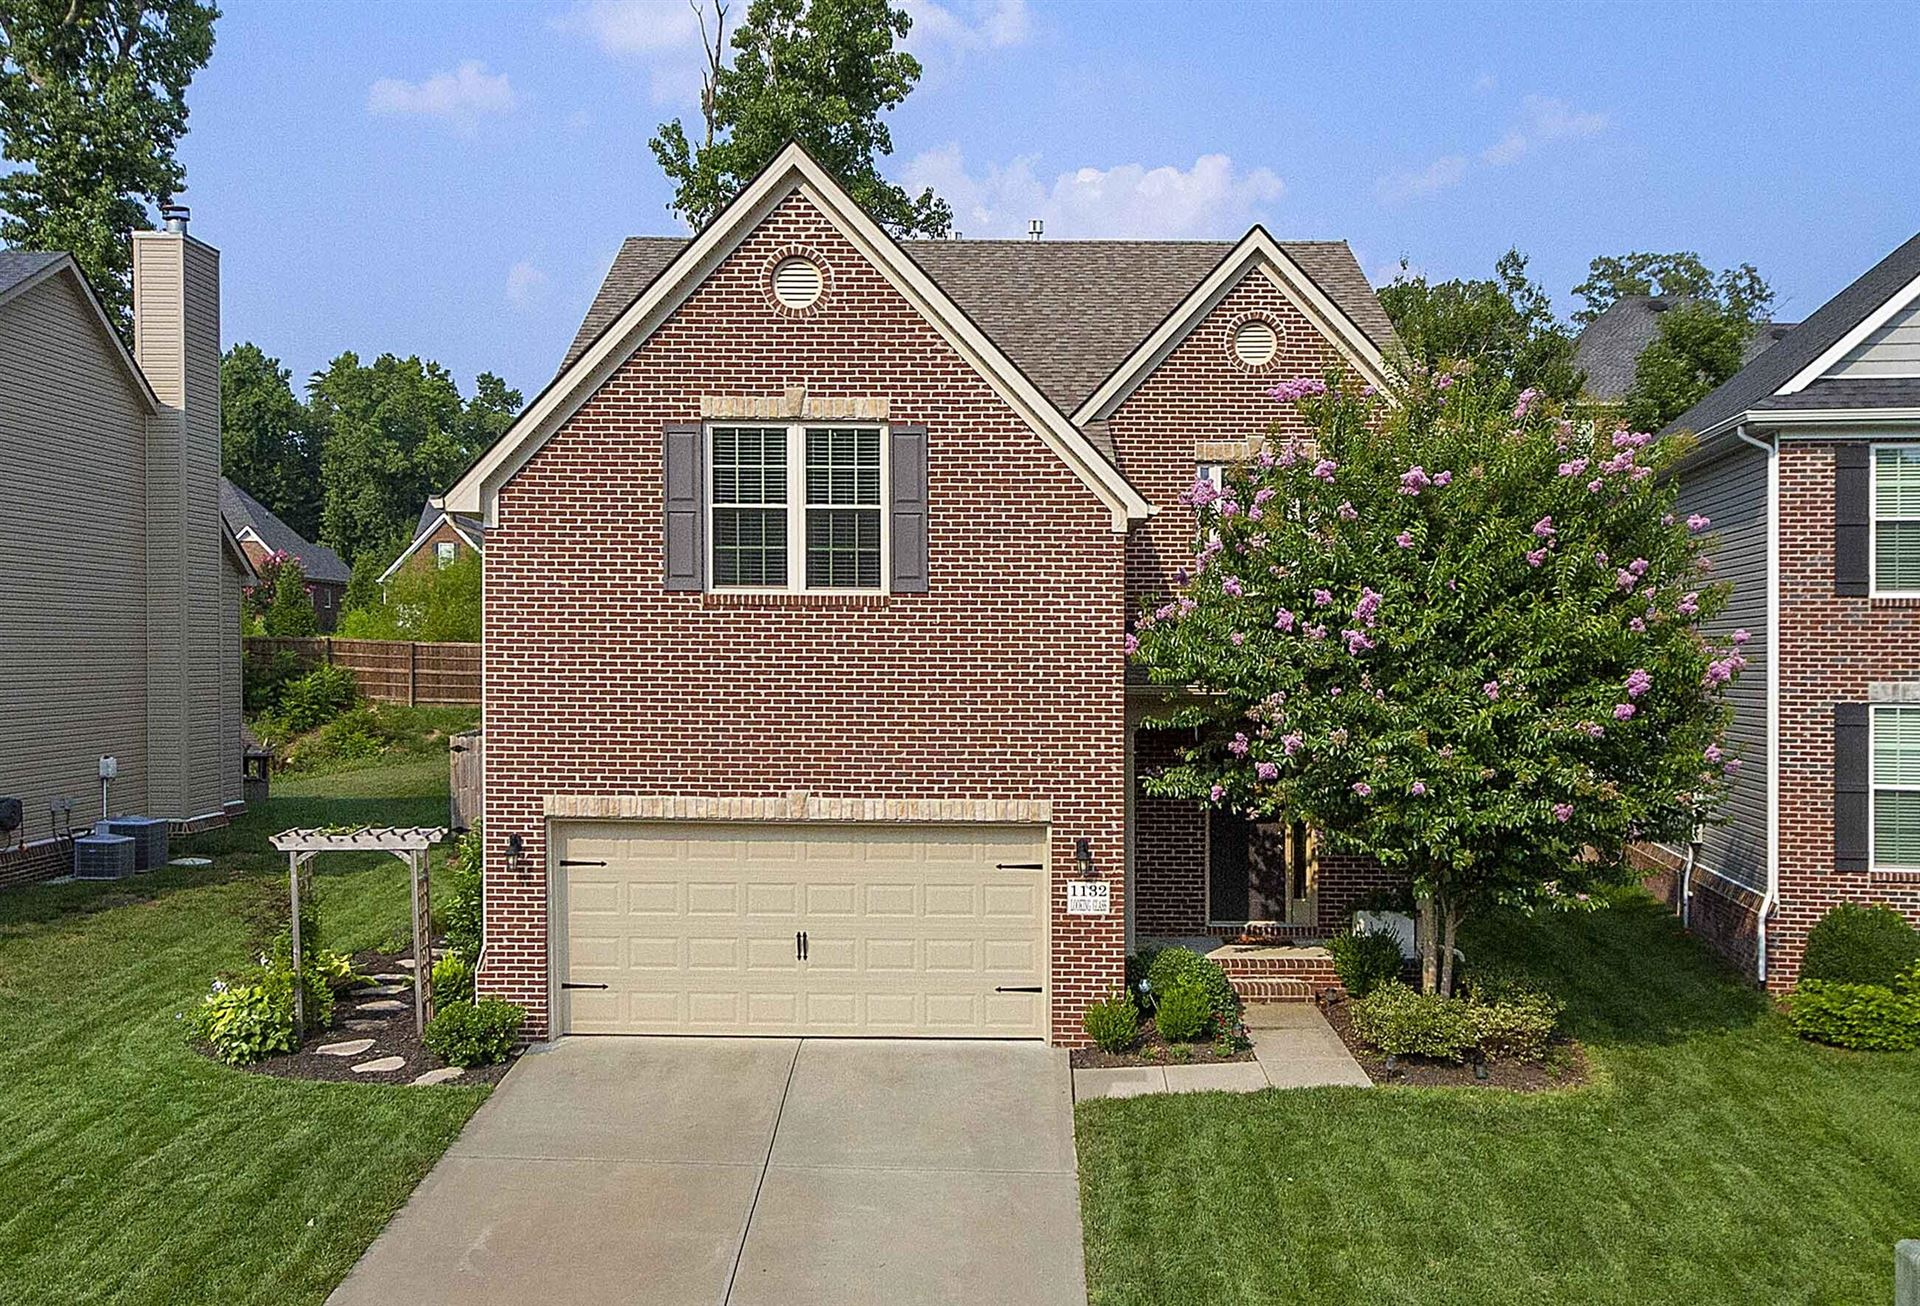 Photo of 1132 Looking Glass Lane, Knoxville, TN 37919 (MLS # 1161423)